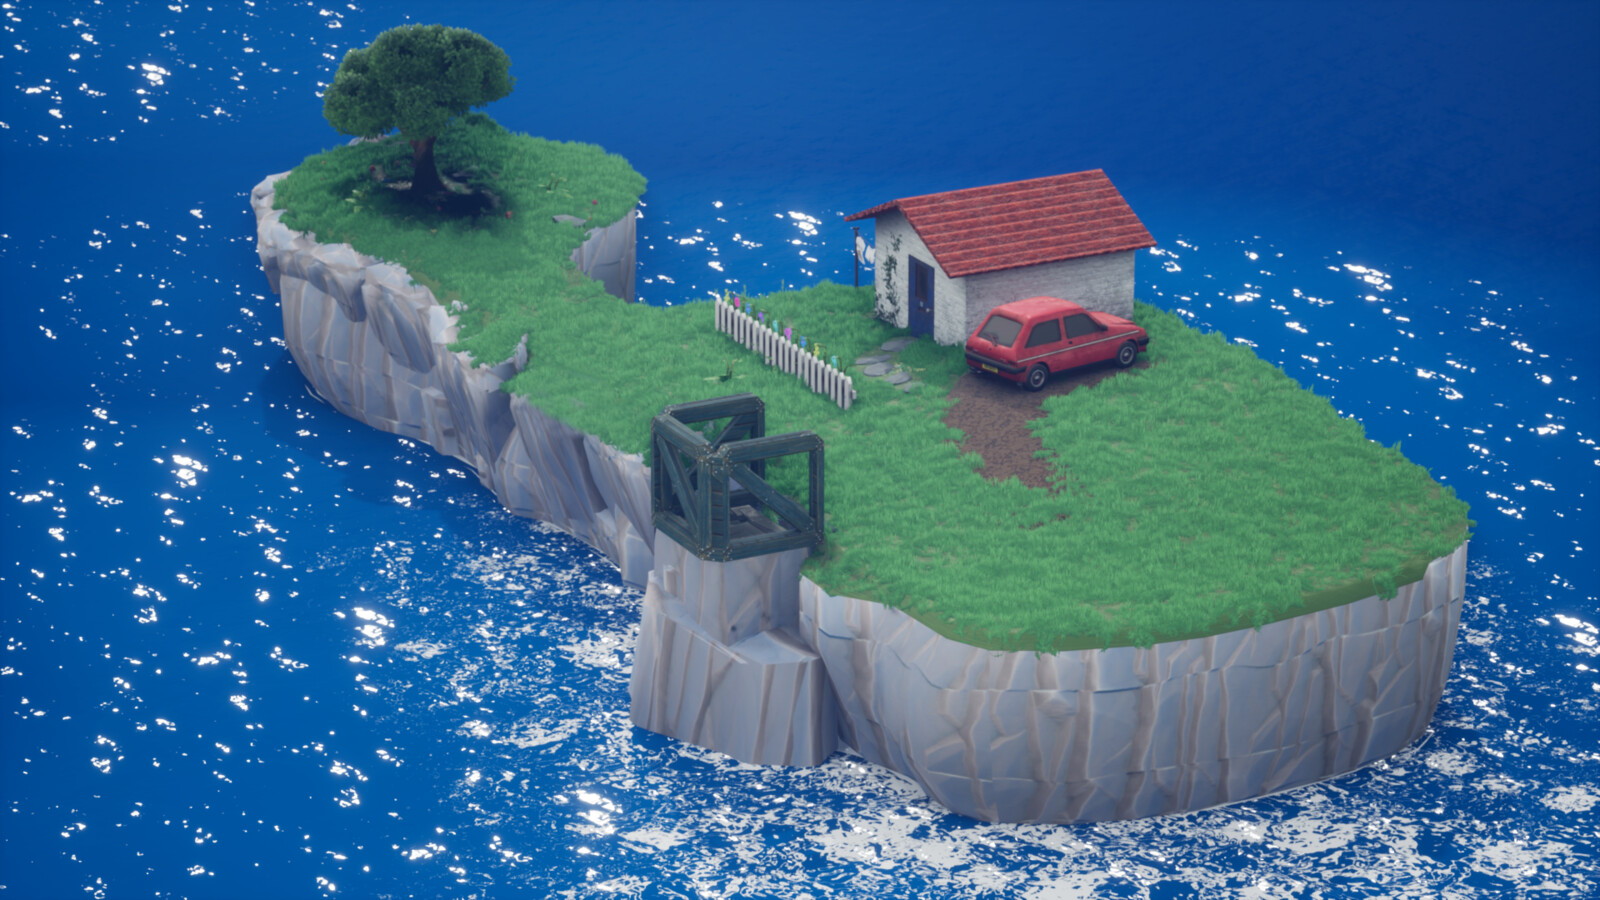 The isle of Willy. Grass, trees and plants part of a UE4 marketplace pack.